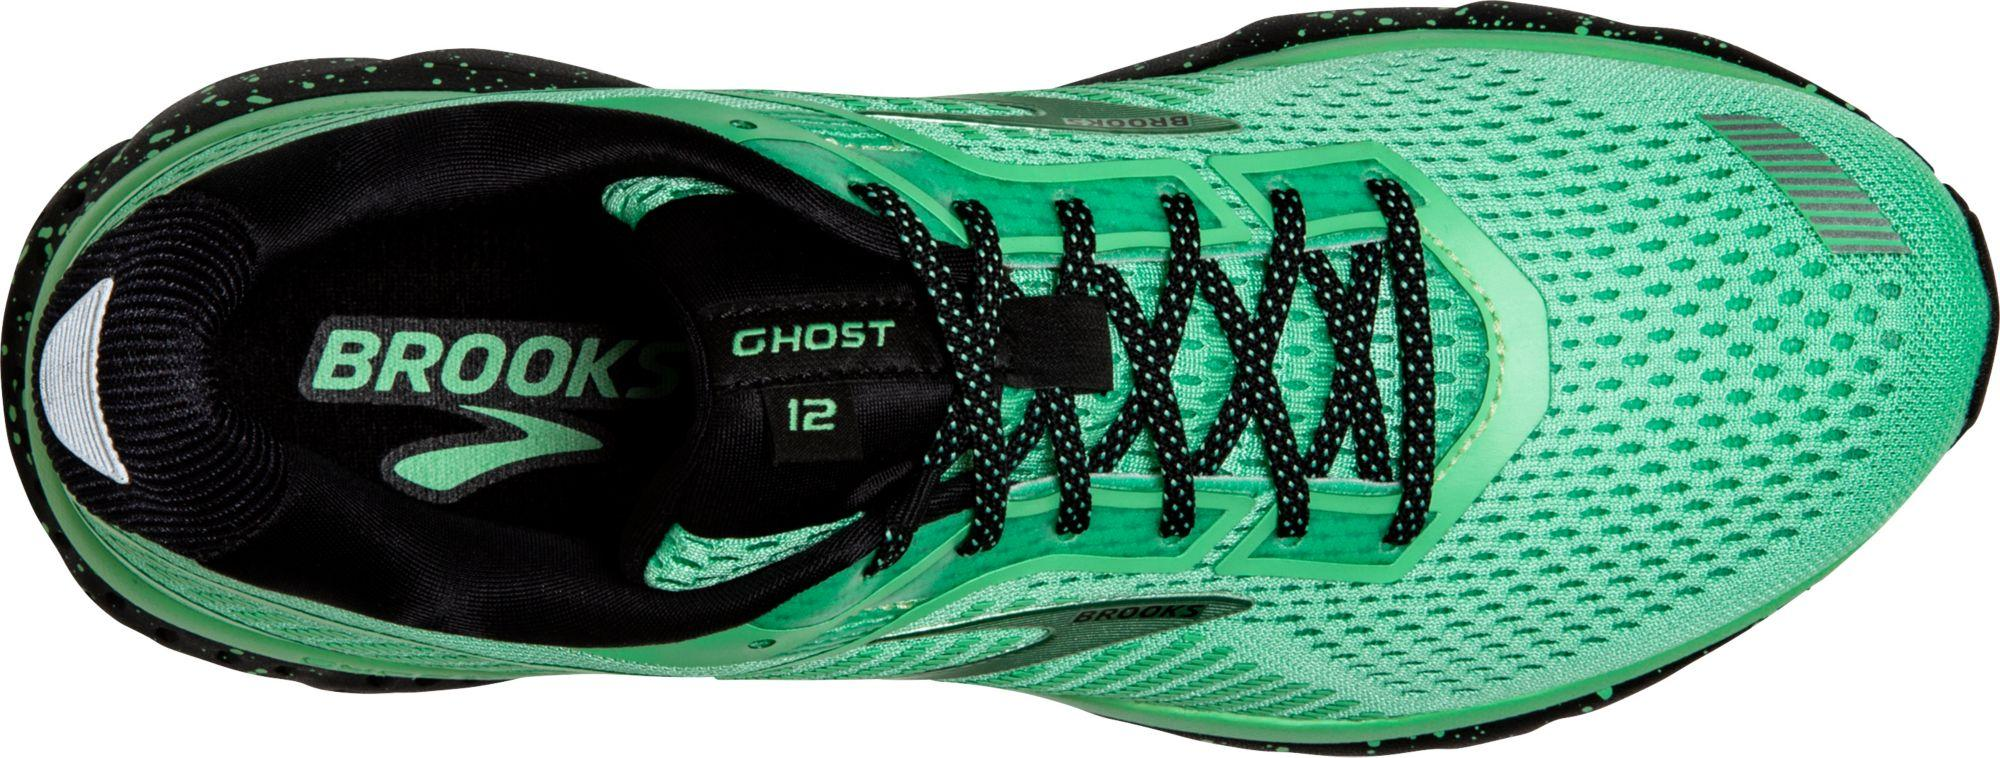 buy \u003e brooks green running shoes, Up to